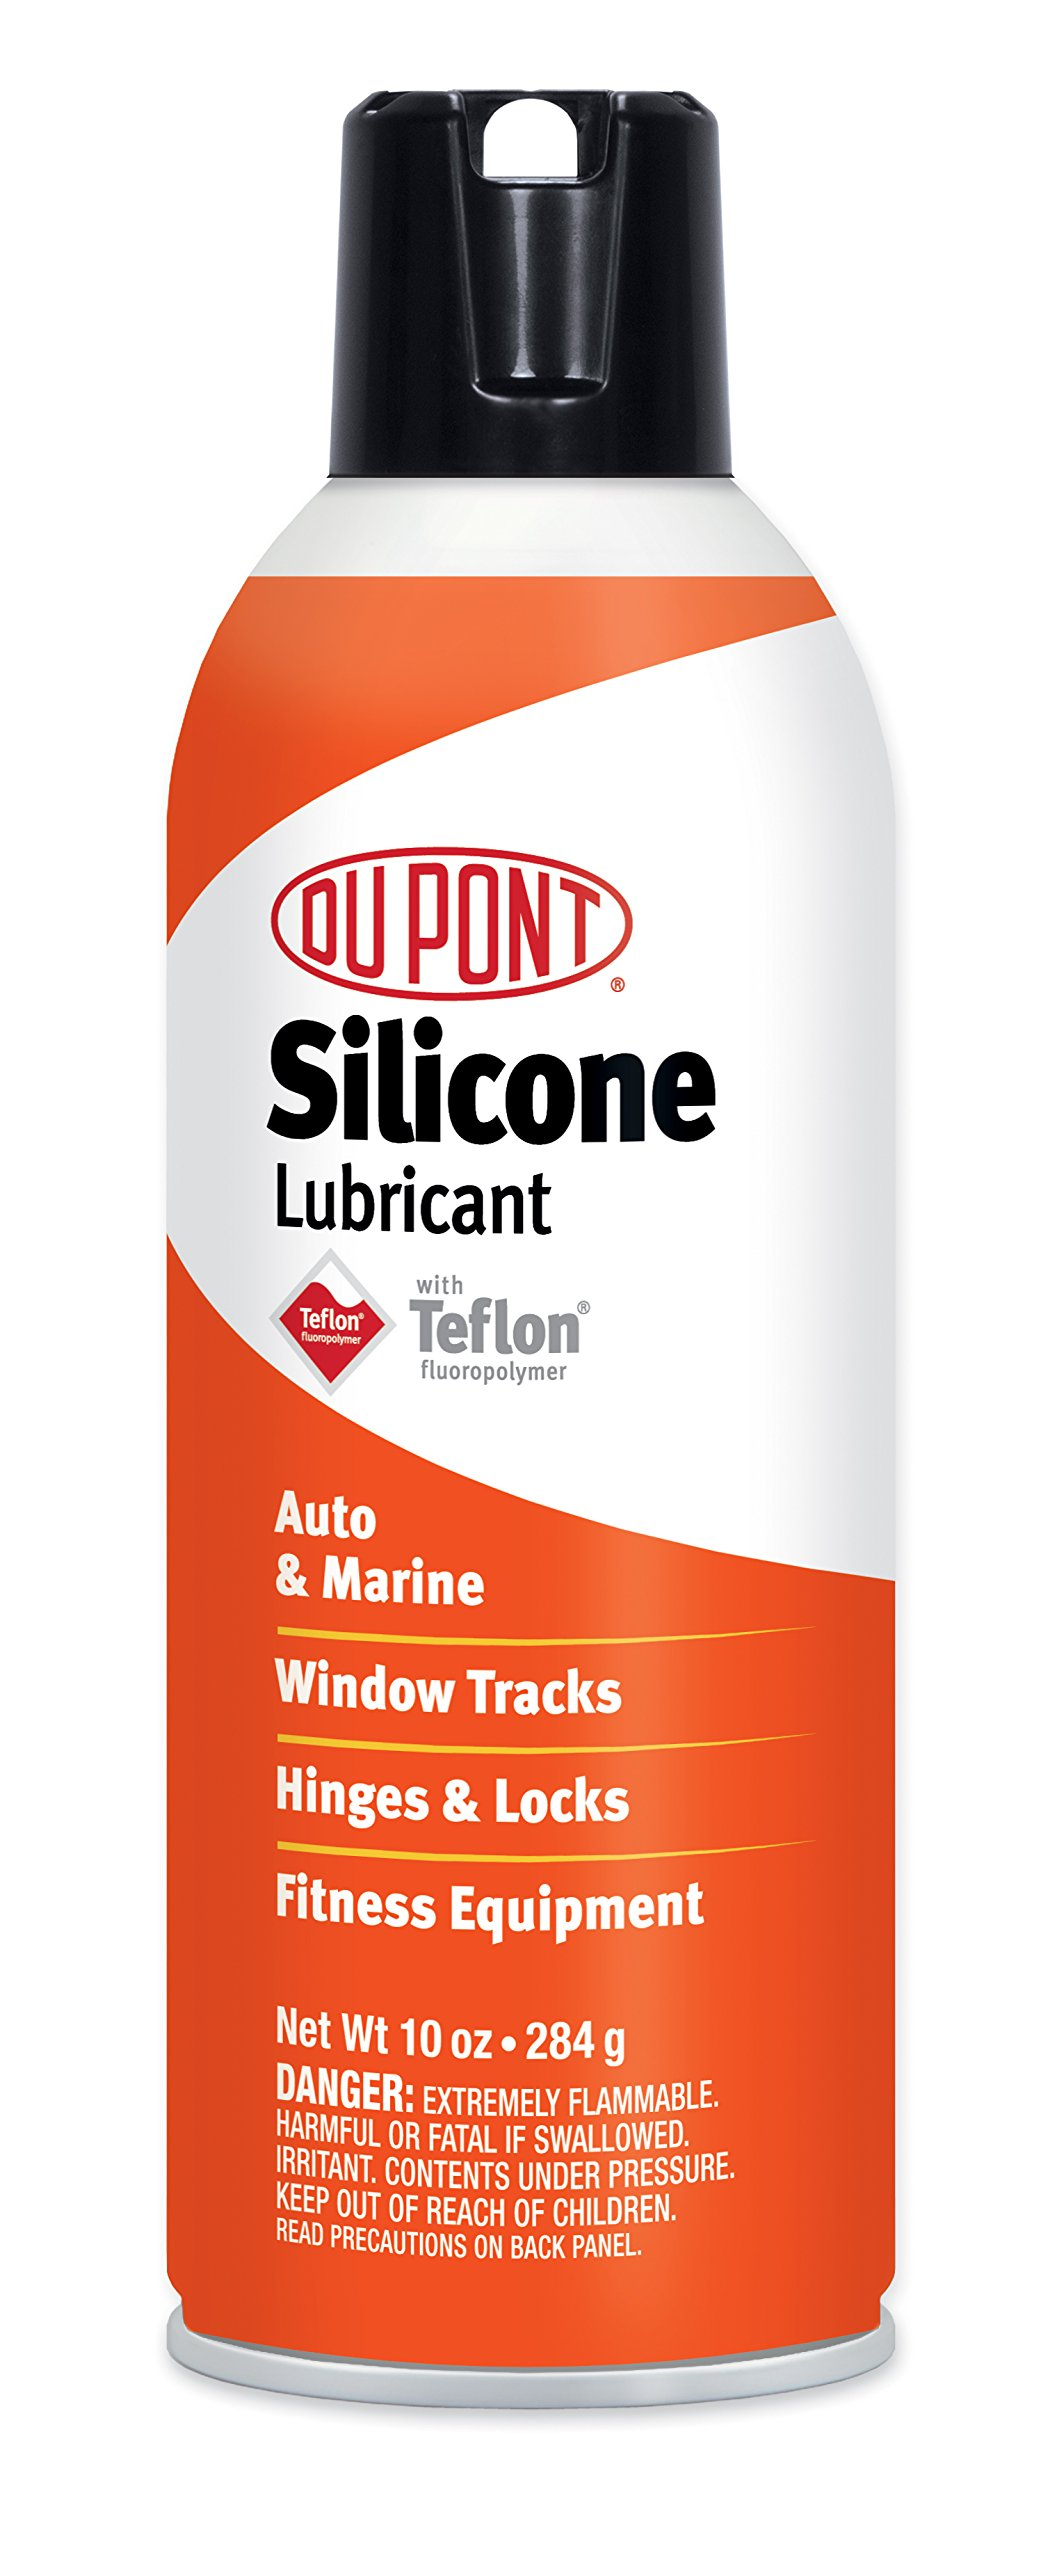 Are silicone based lubricants harmful